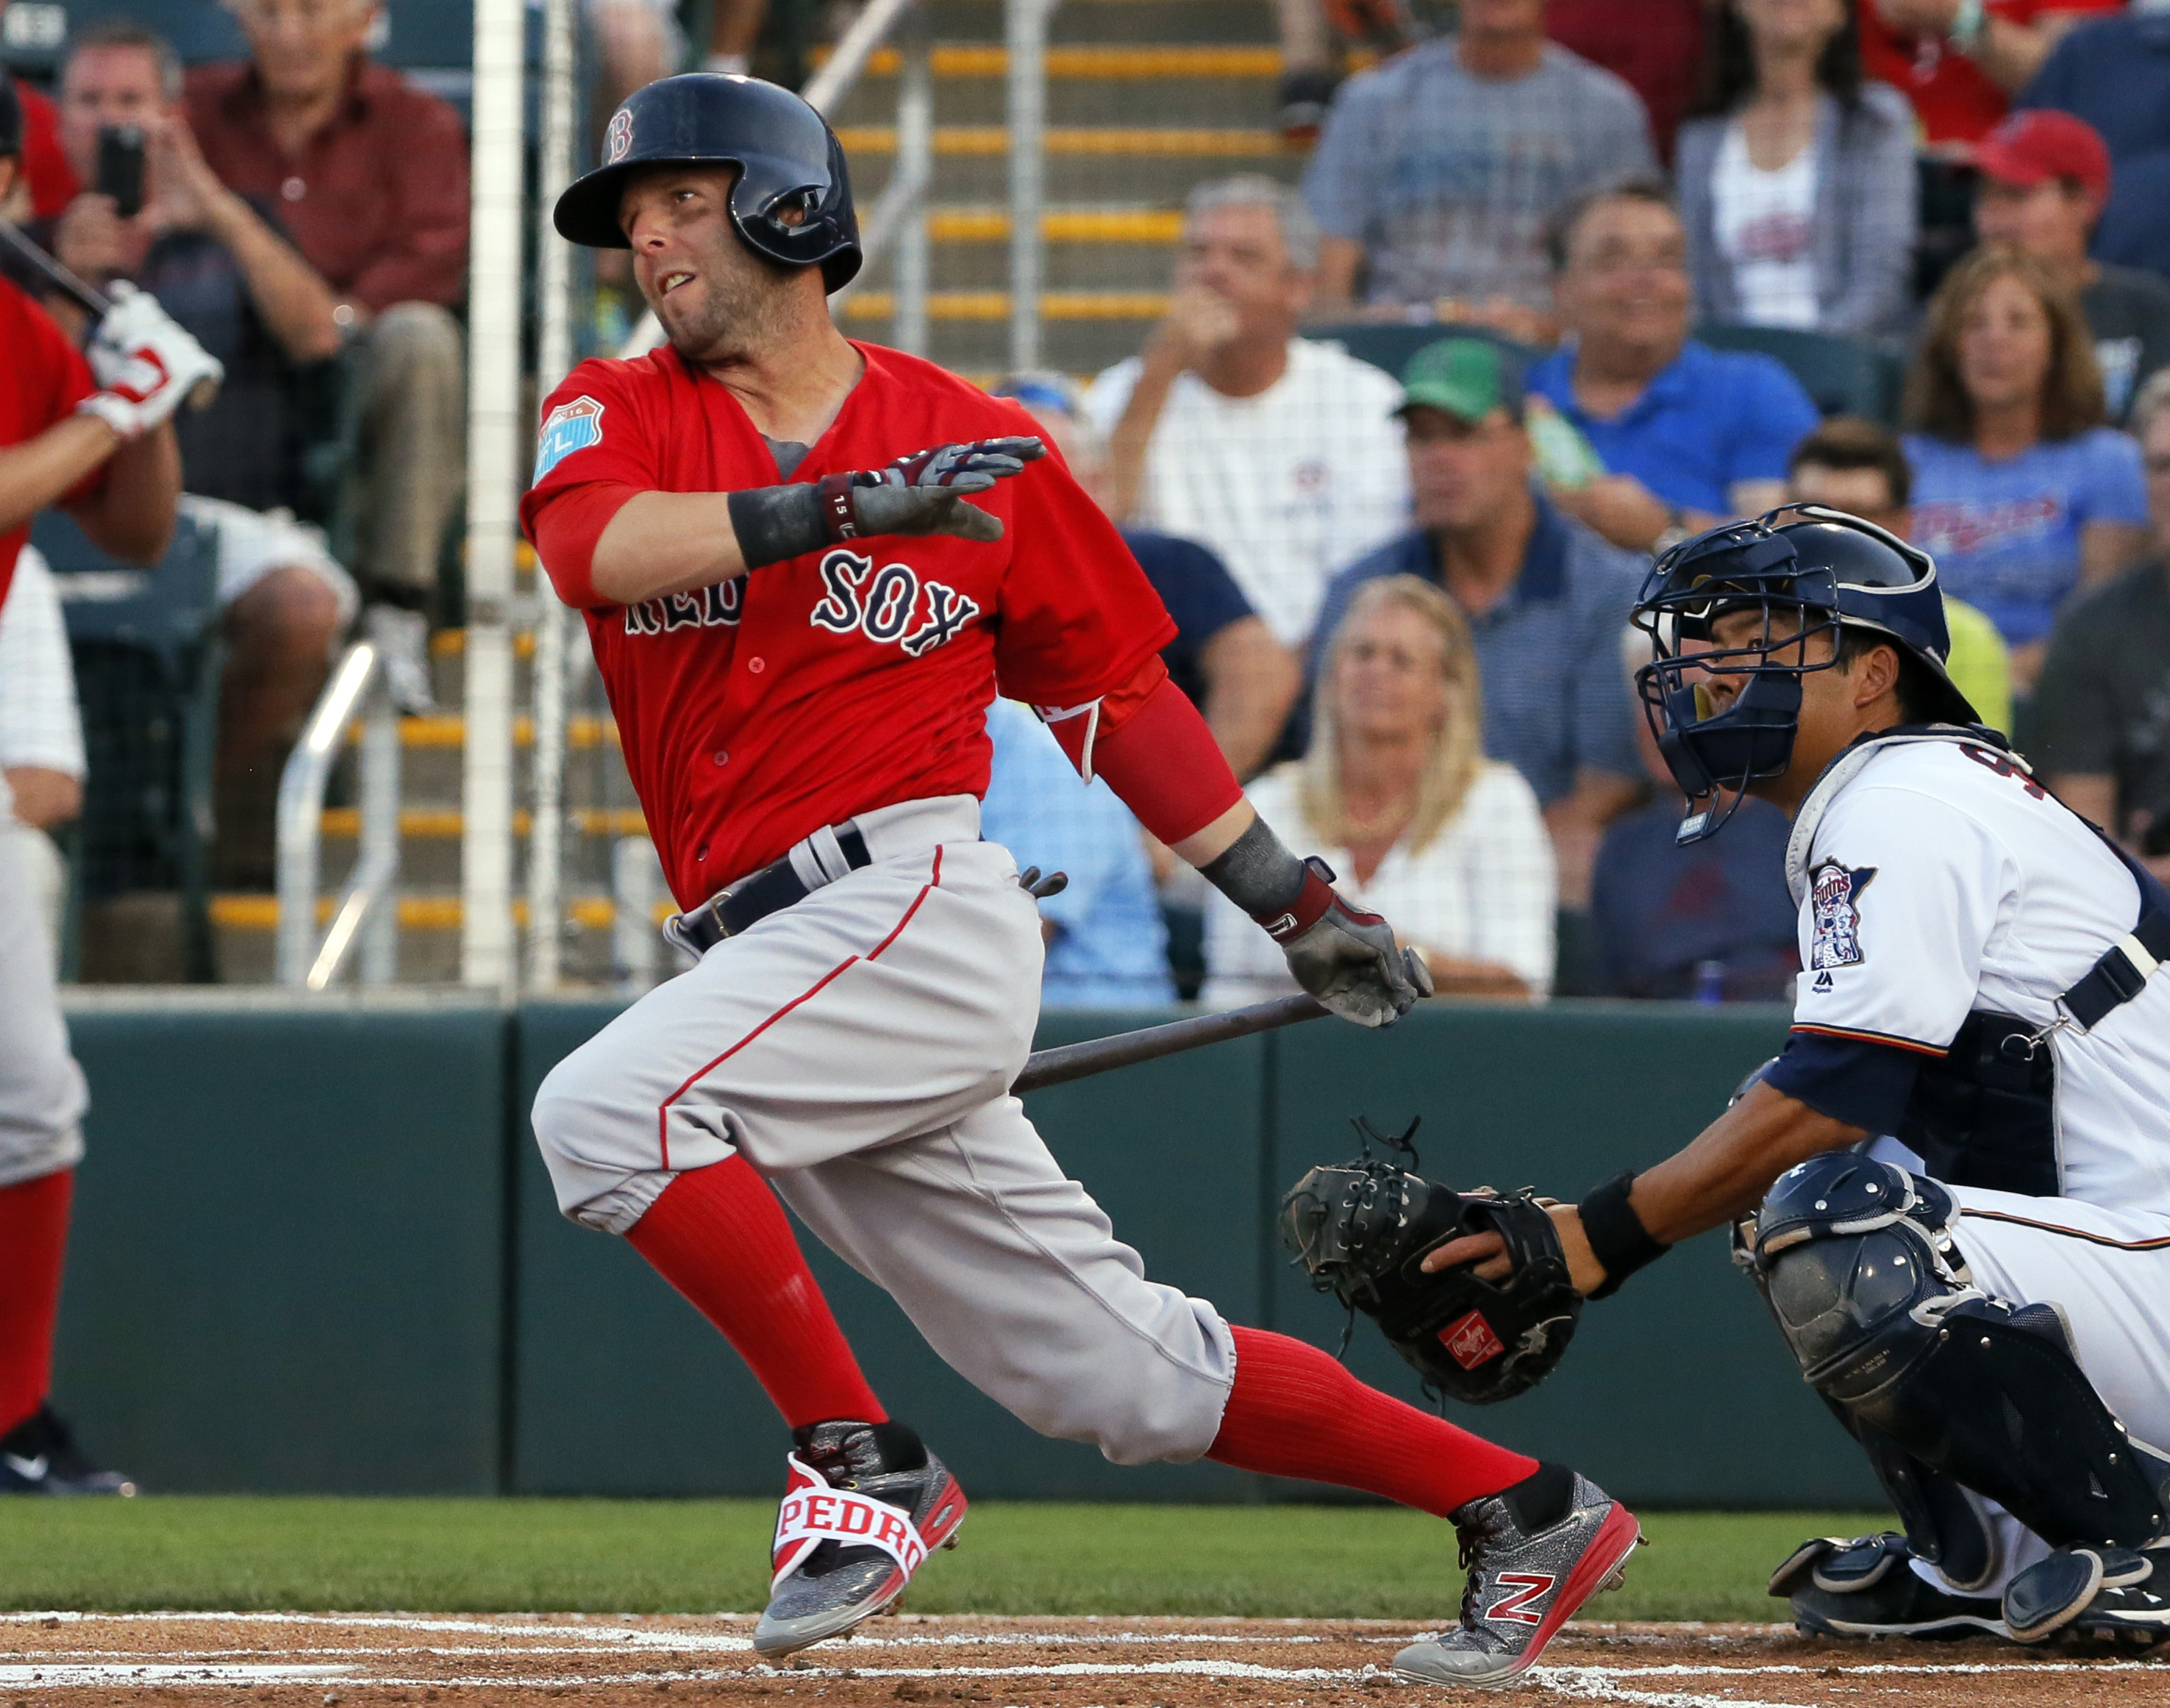 Boston Red Sox's Dustin Pedroia follows through on a ground-out in the first inning of a spring training baseball game as Minnesota Twins catcher Kurt Suzuki watches, Wednesday, March 16, 2016, in Fort Myers, Fla. The Twins won 9-4. (AP Photo/Tony Gutierr